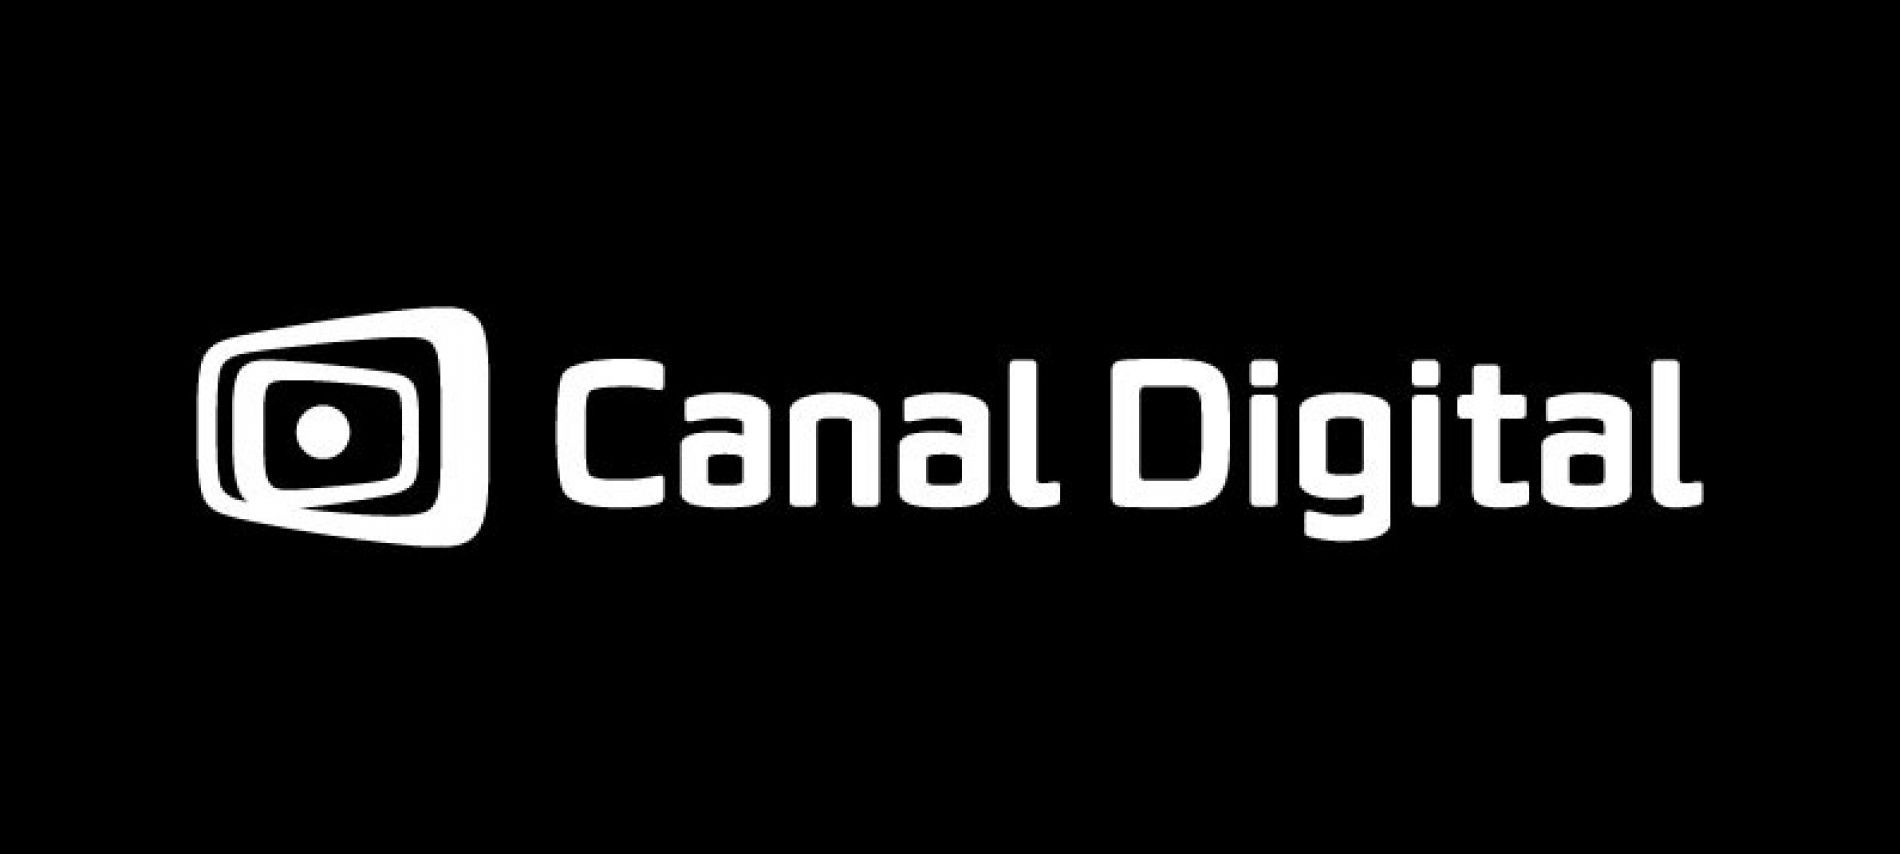 'What We Started' in Canal Digital spot.